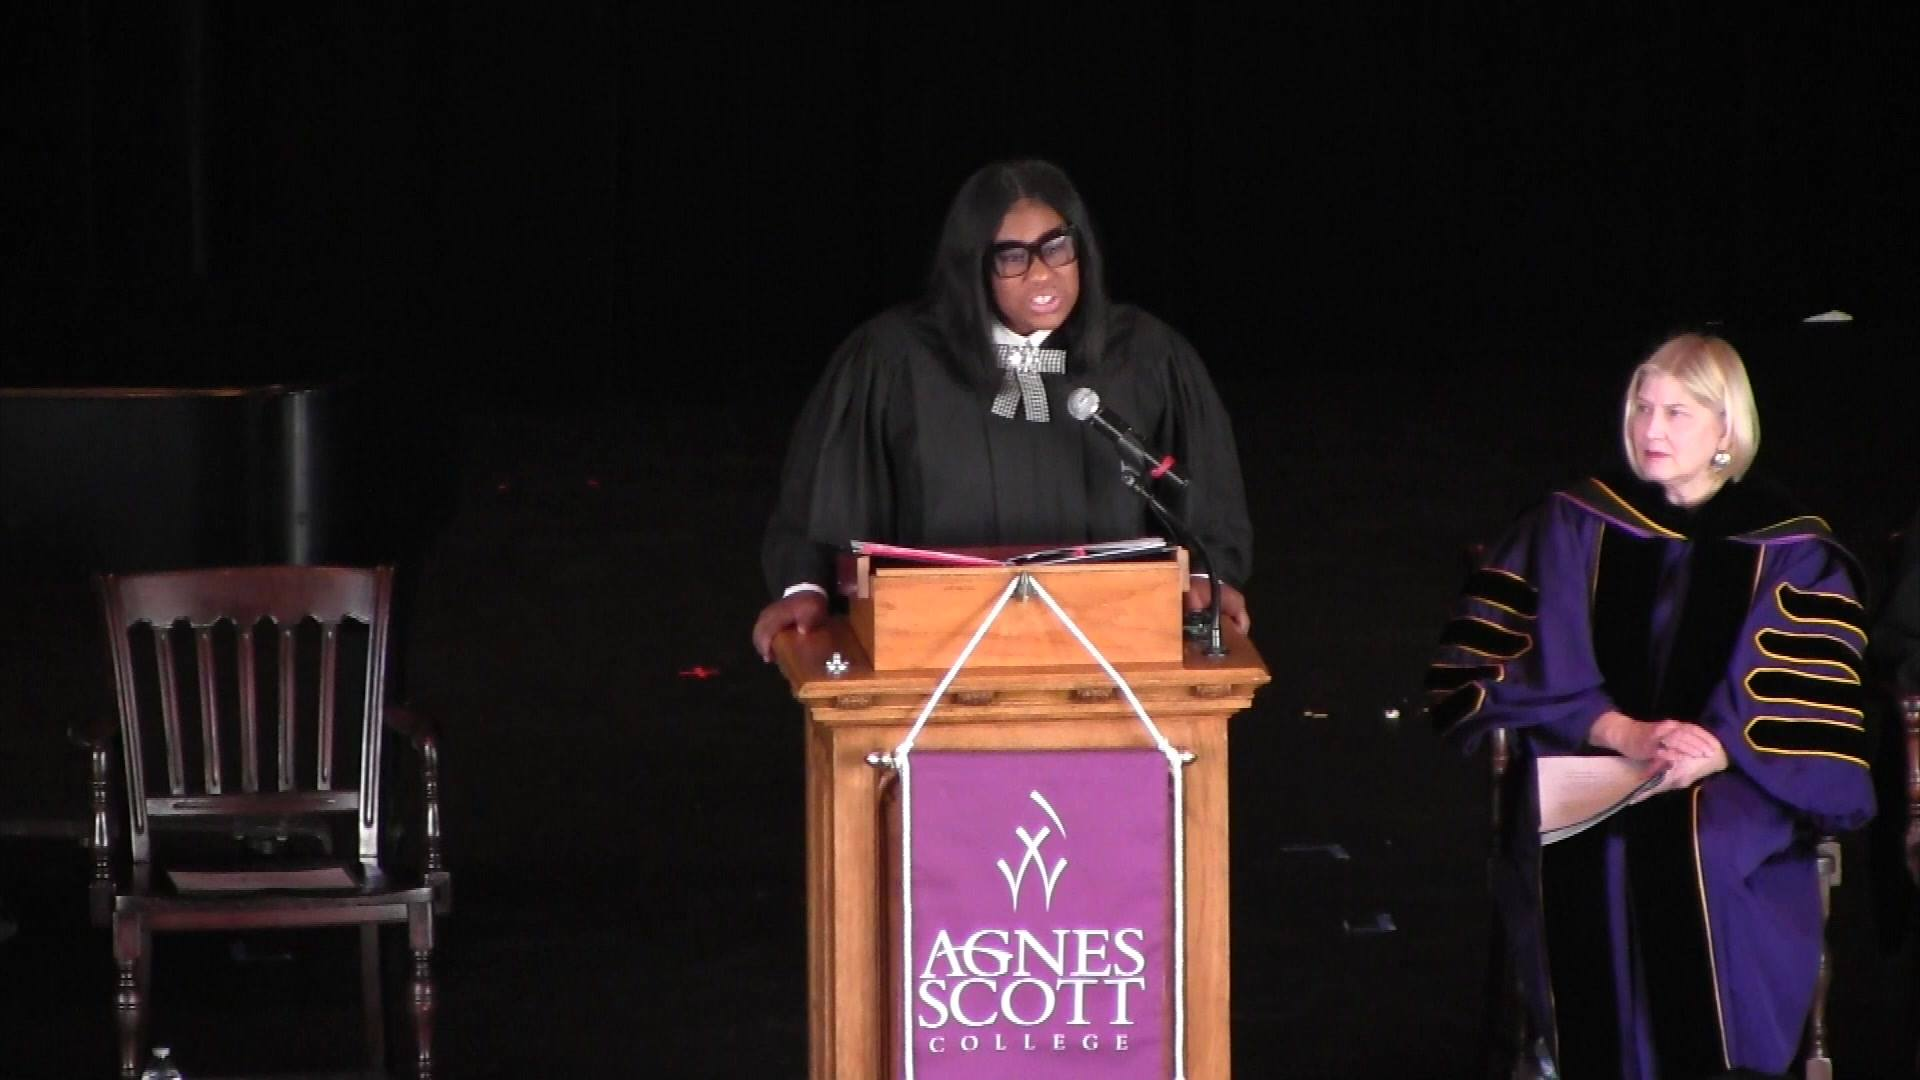 """When issues seem impossible to solve, we have to stop using words like impossible and replace them with words like obtainable, achievable and possible."" - Mary-Pat Hector  Watch the powerful Dr. Martin Luther King Convocation keynote address ""Bastio"